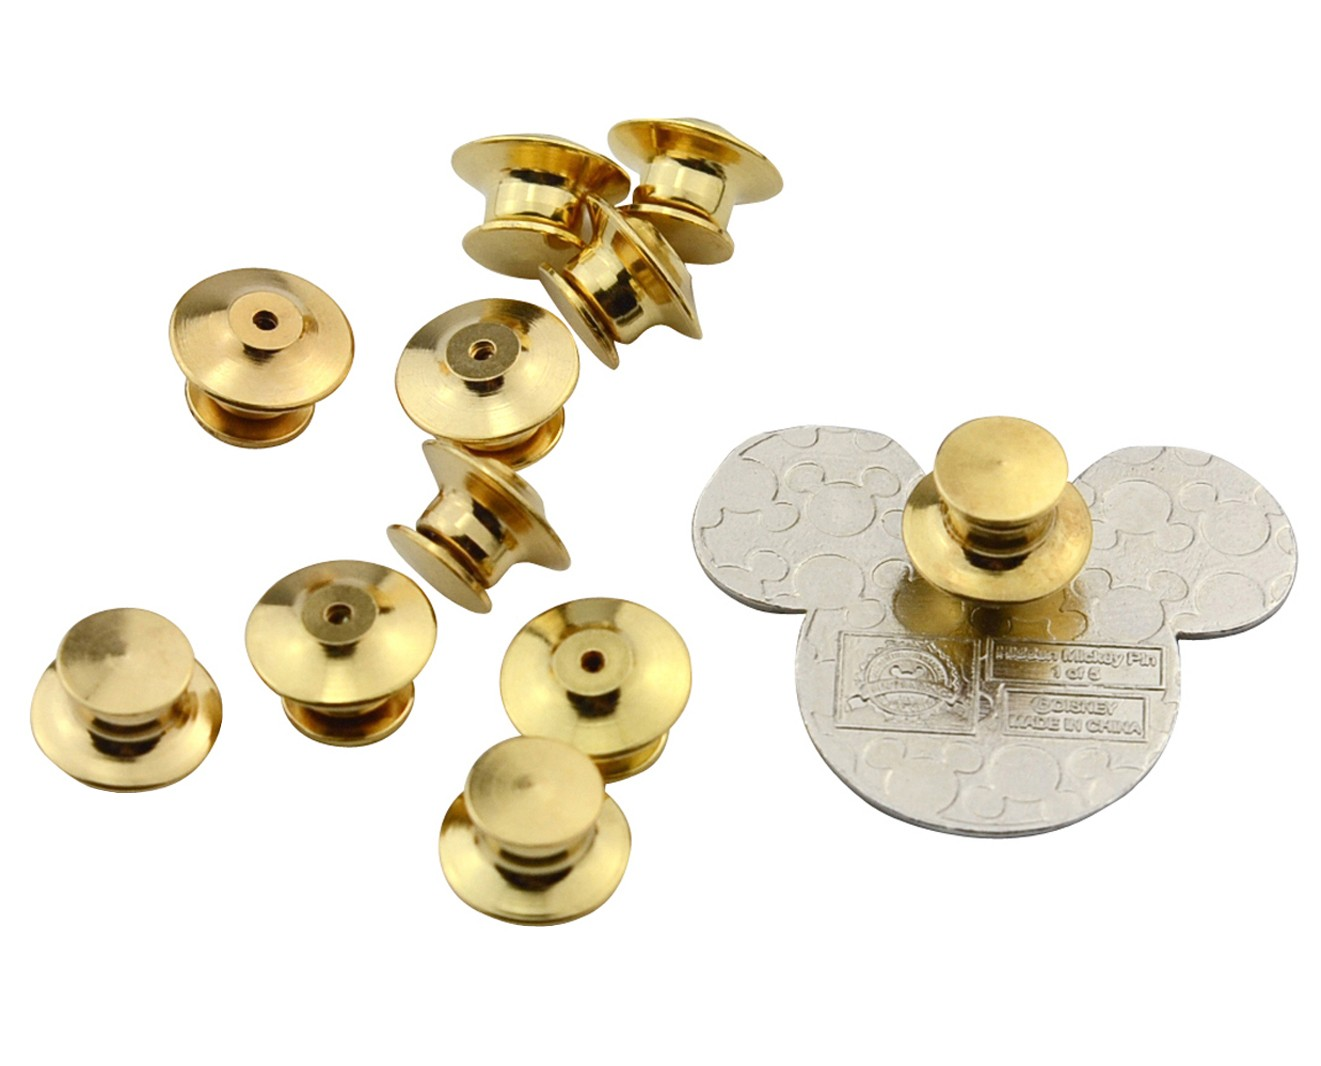 Military Pin Keepers-Low Profile Locking Pin Backs for All